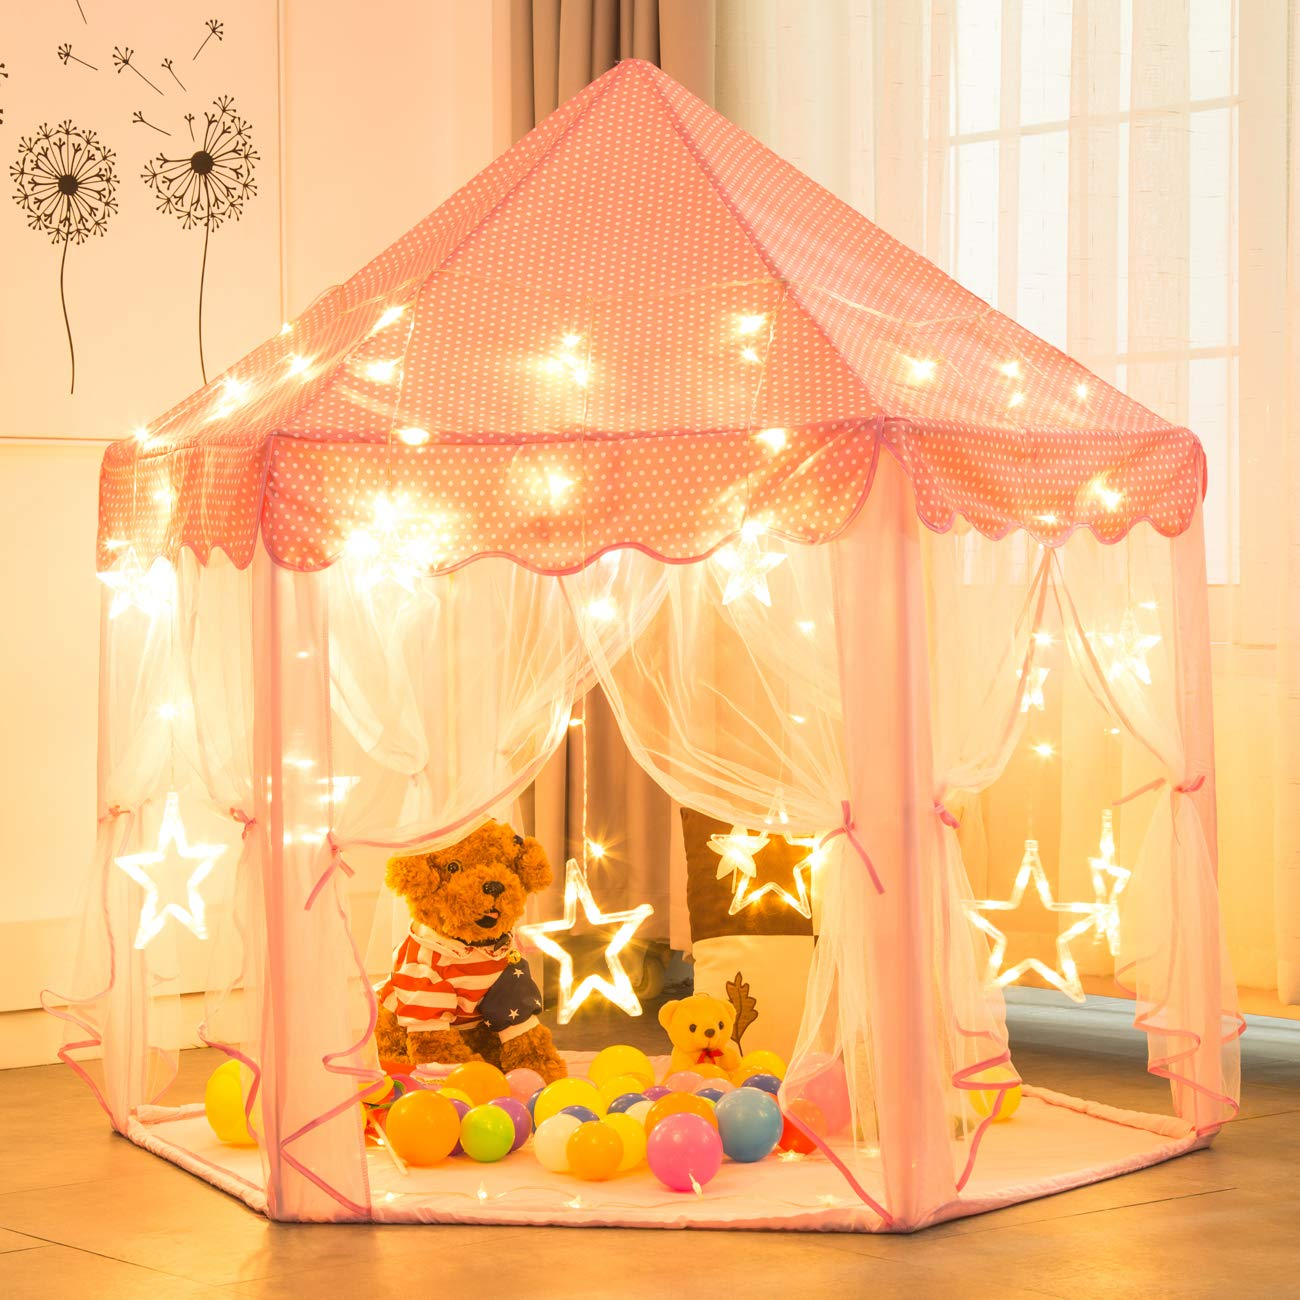 Sunnyglade 55'' x 53'' Princess Tent with 8.2 Feet Big and Large Star Lights Girls Large Playhouse Kids Castle Play Tent for Children Indoor and Outdoor Games by Sunnyglade (Image #2)